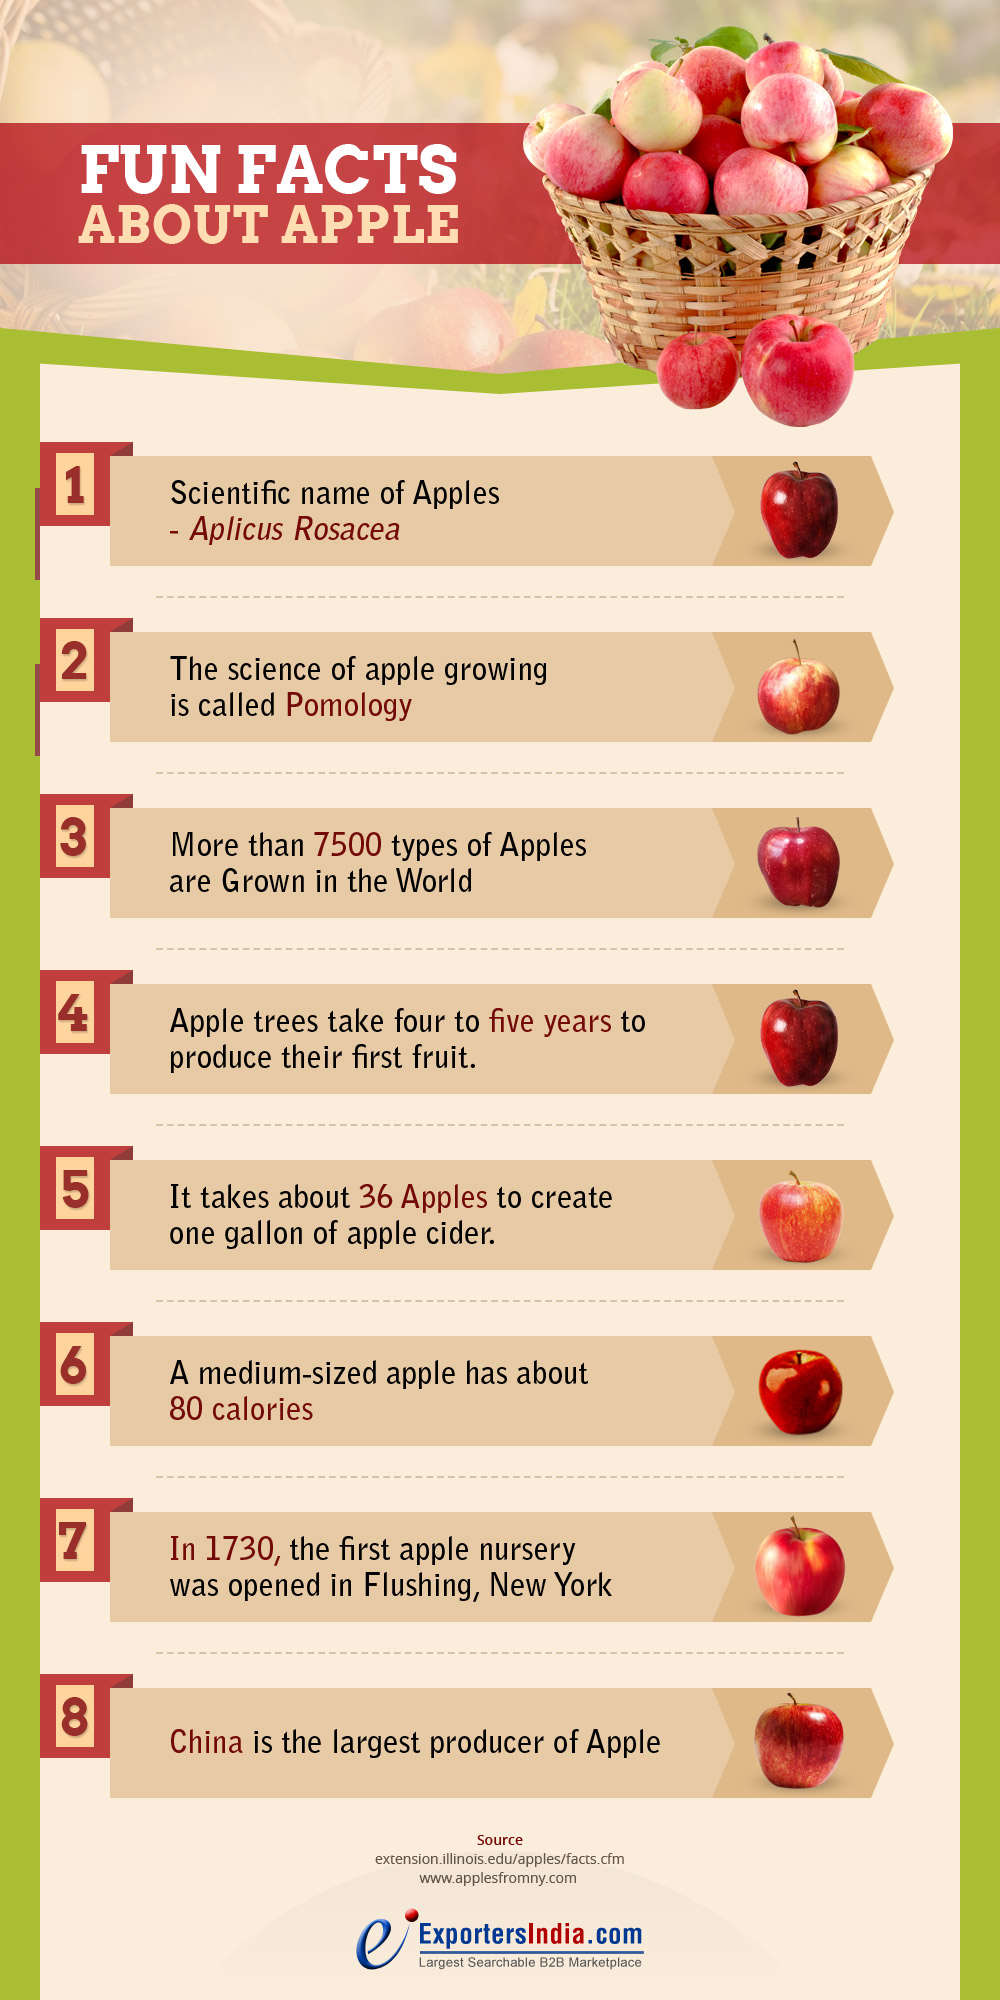 8 Fun Facts About Apple